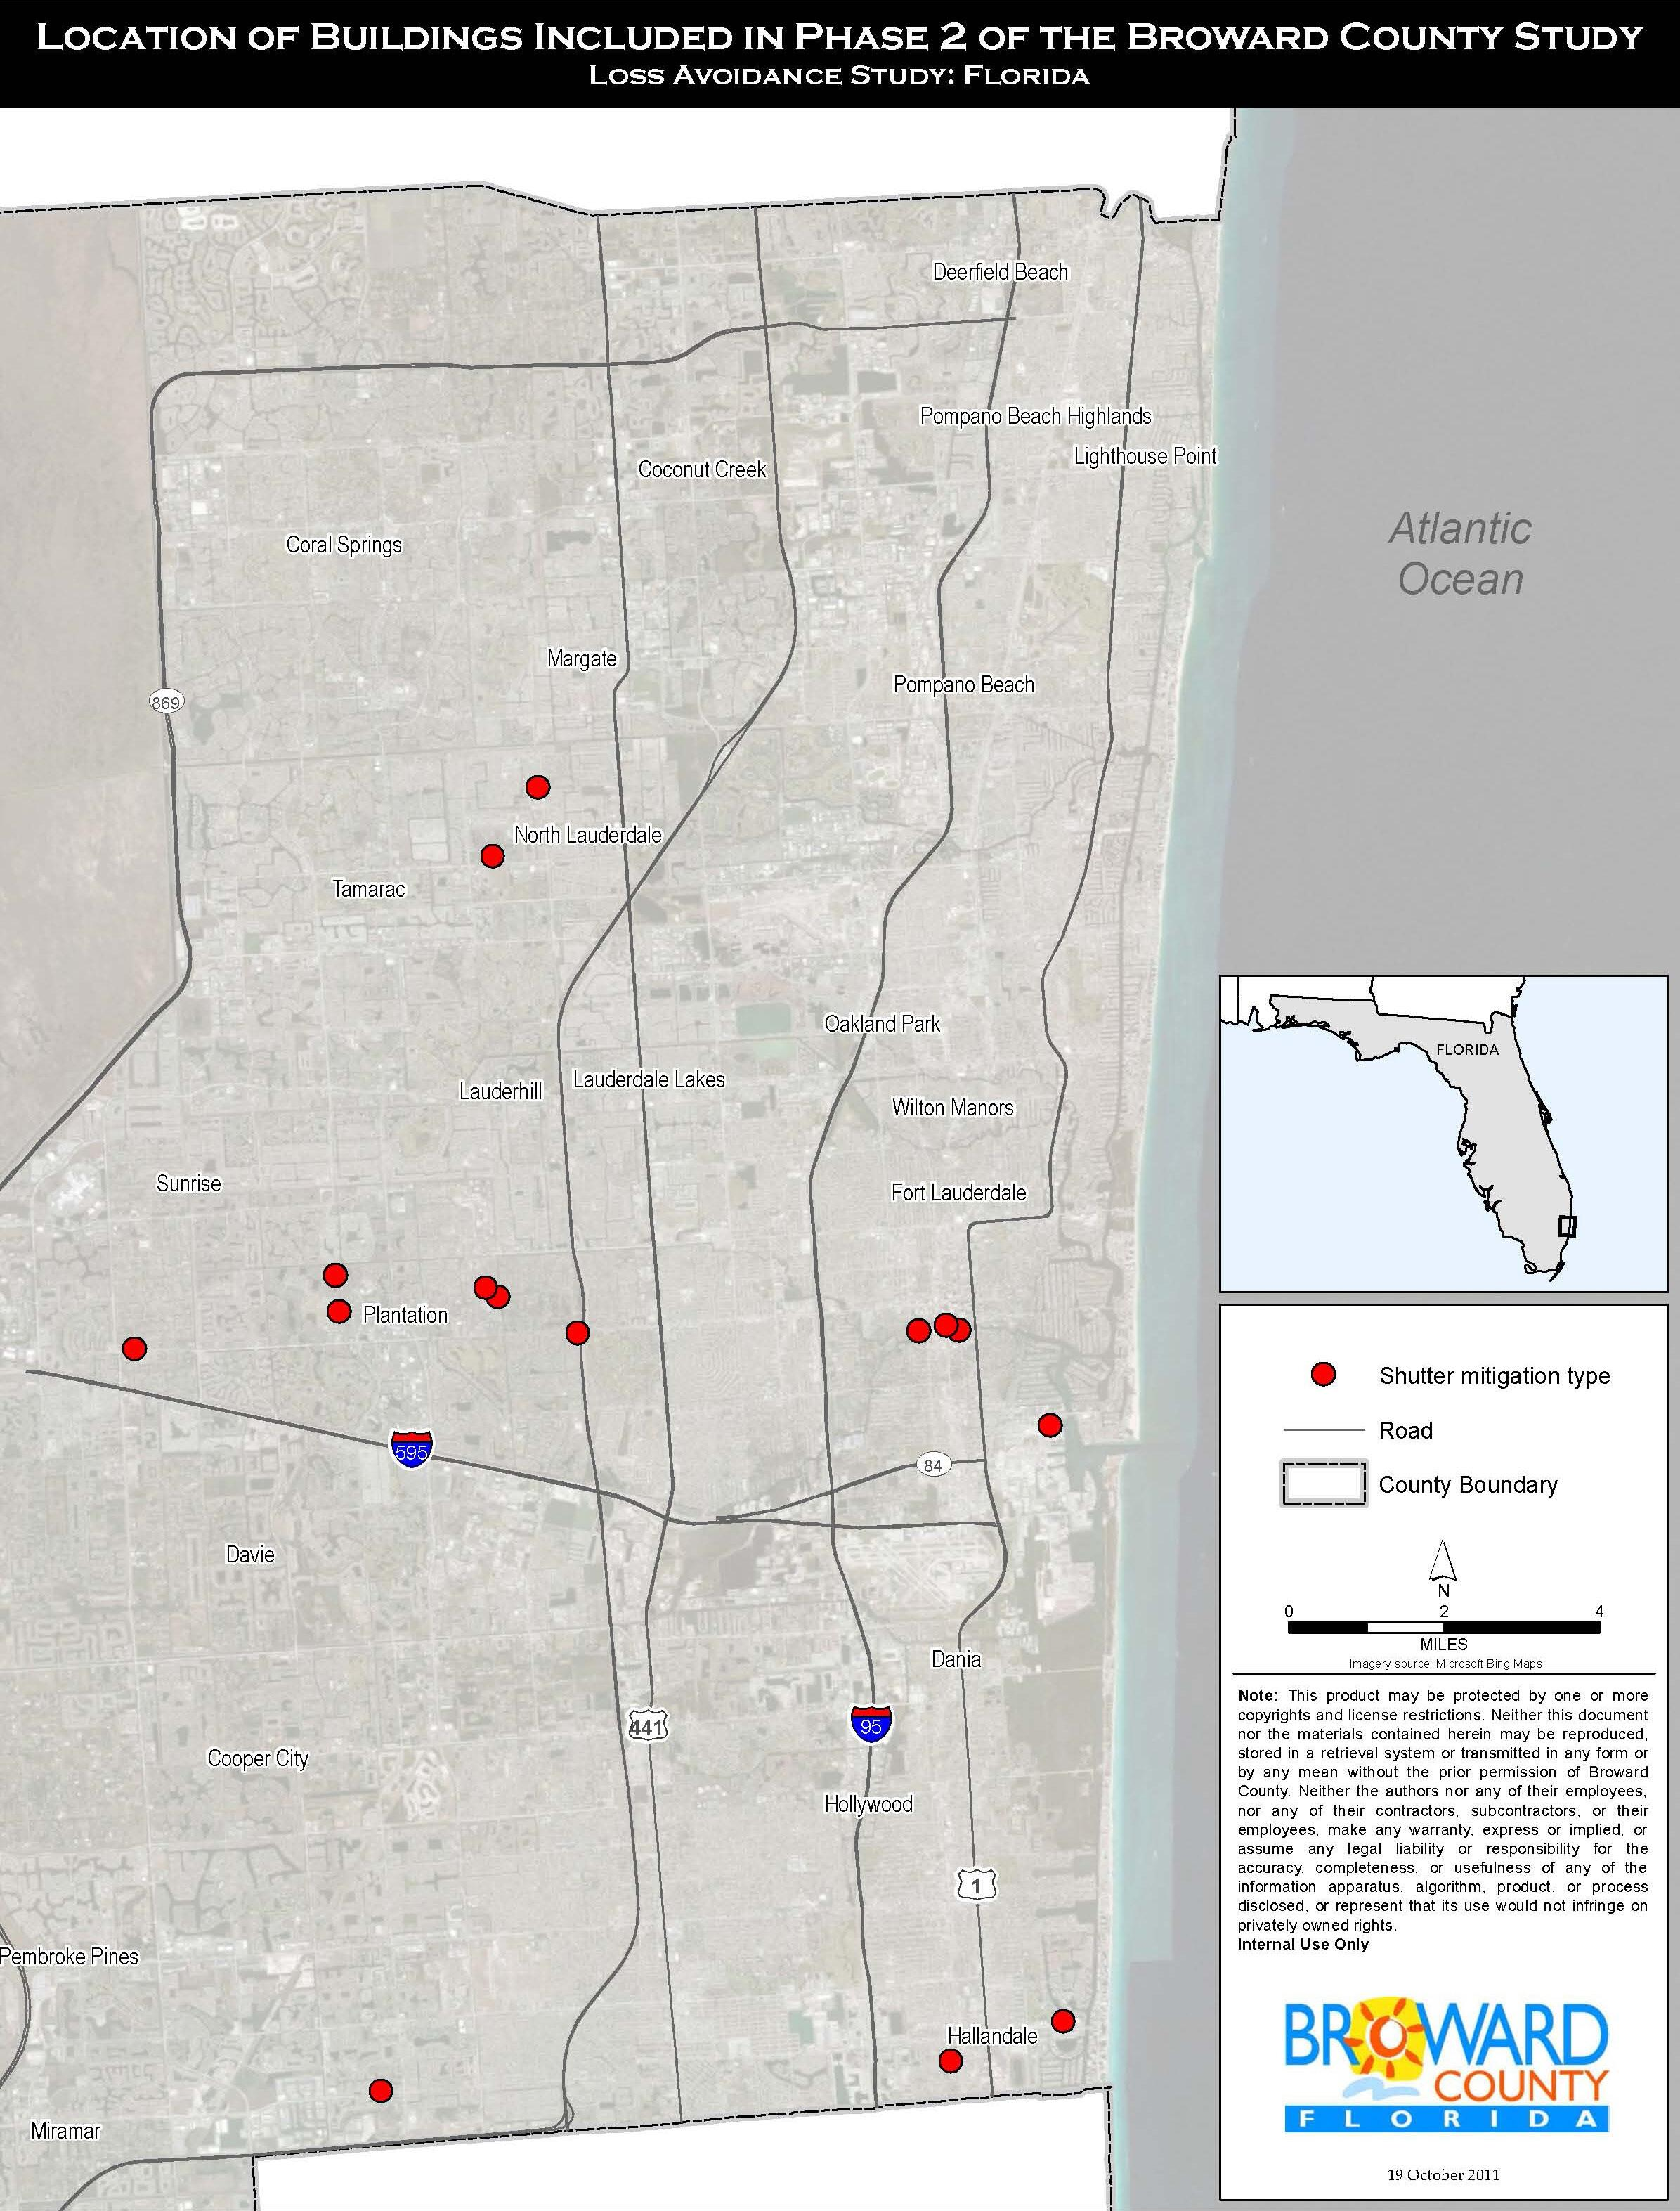 Location of Buildings Included in Phase 2 of the Broward County Study. Loss Avoidance Study: Florida. Locations of shutter mitigation type shown as well as roads and county boundaries.